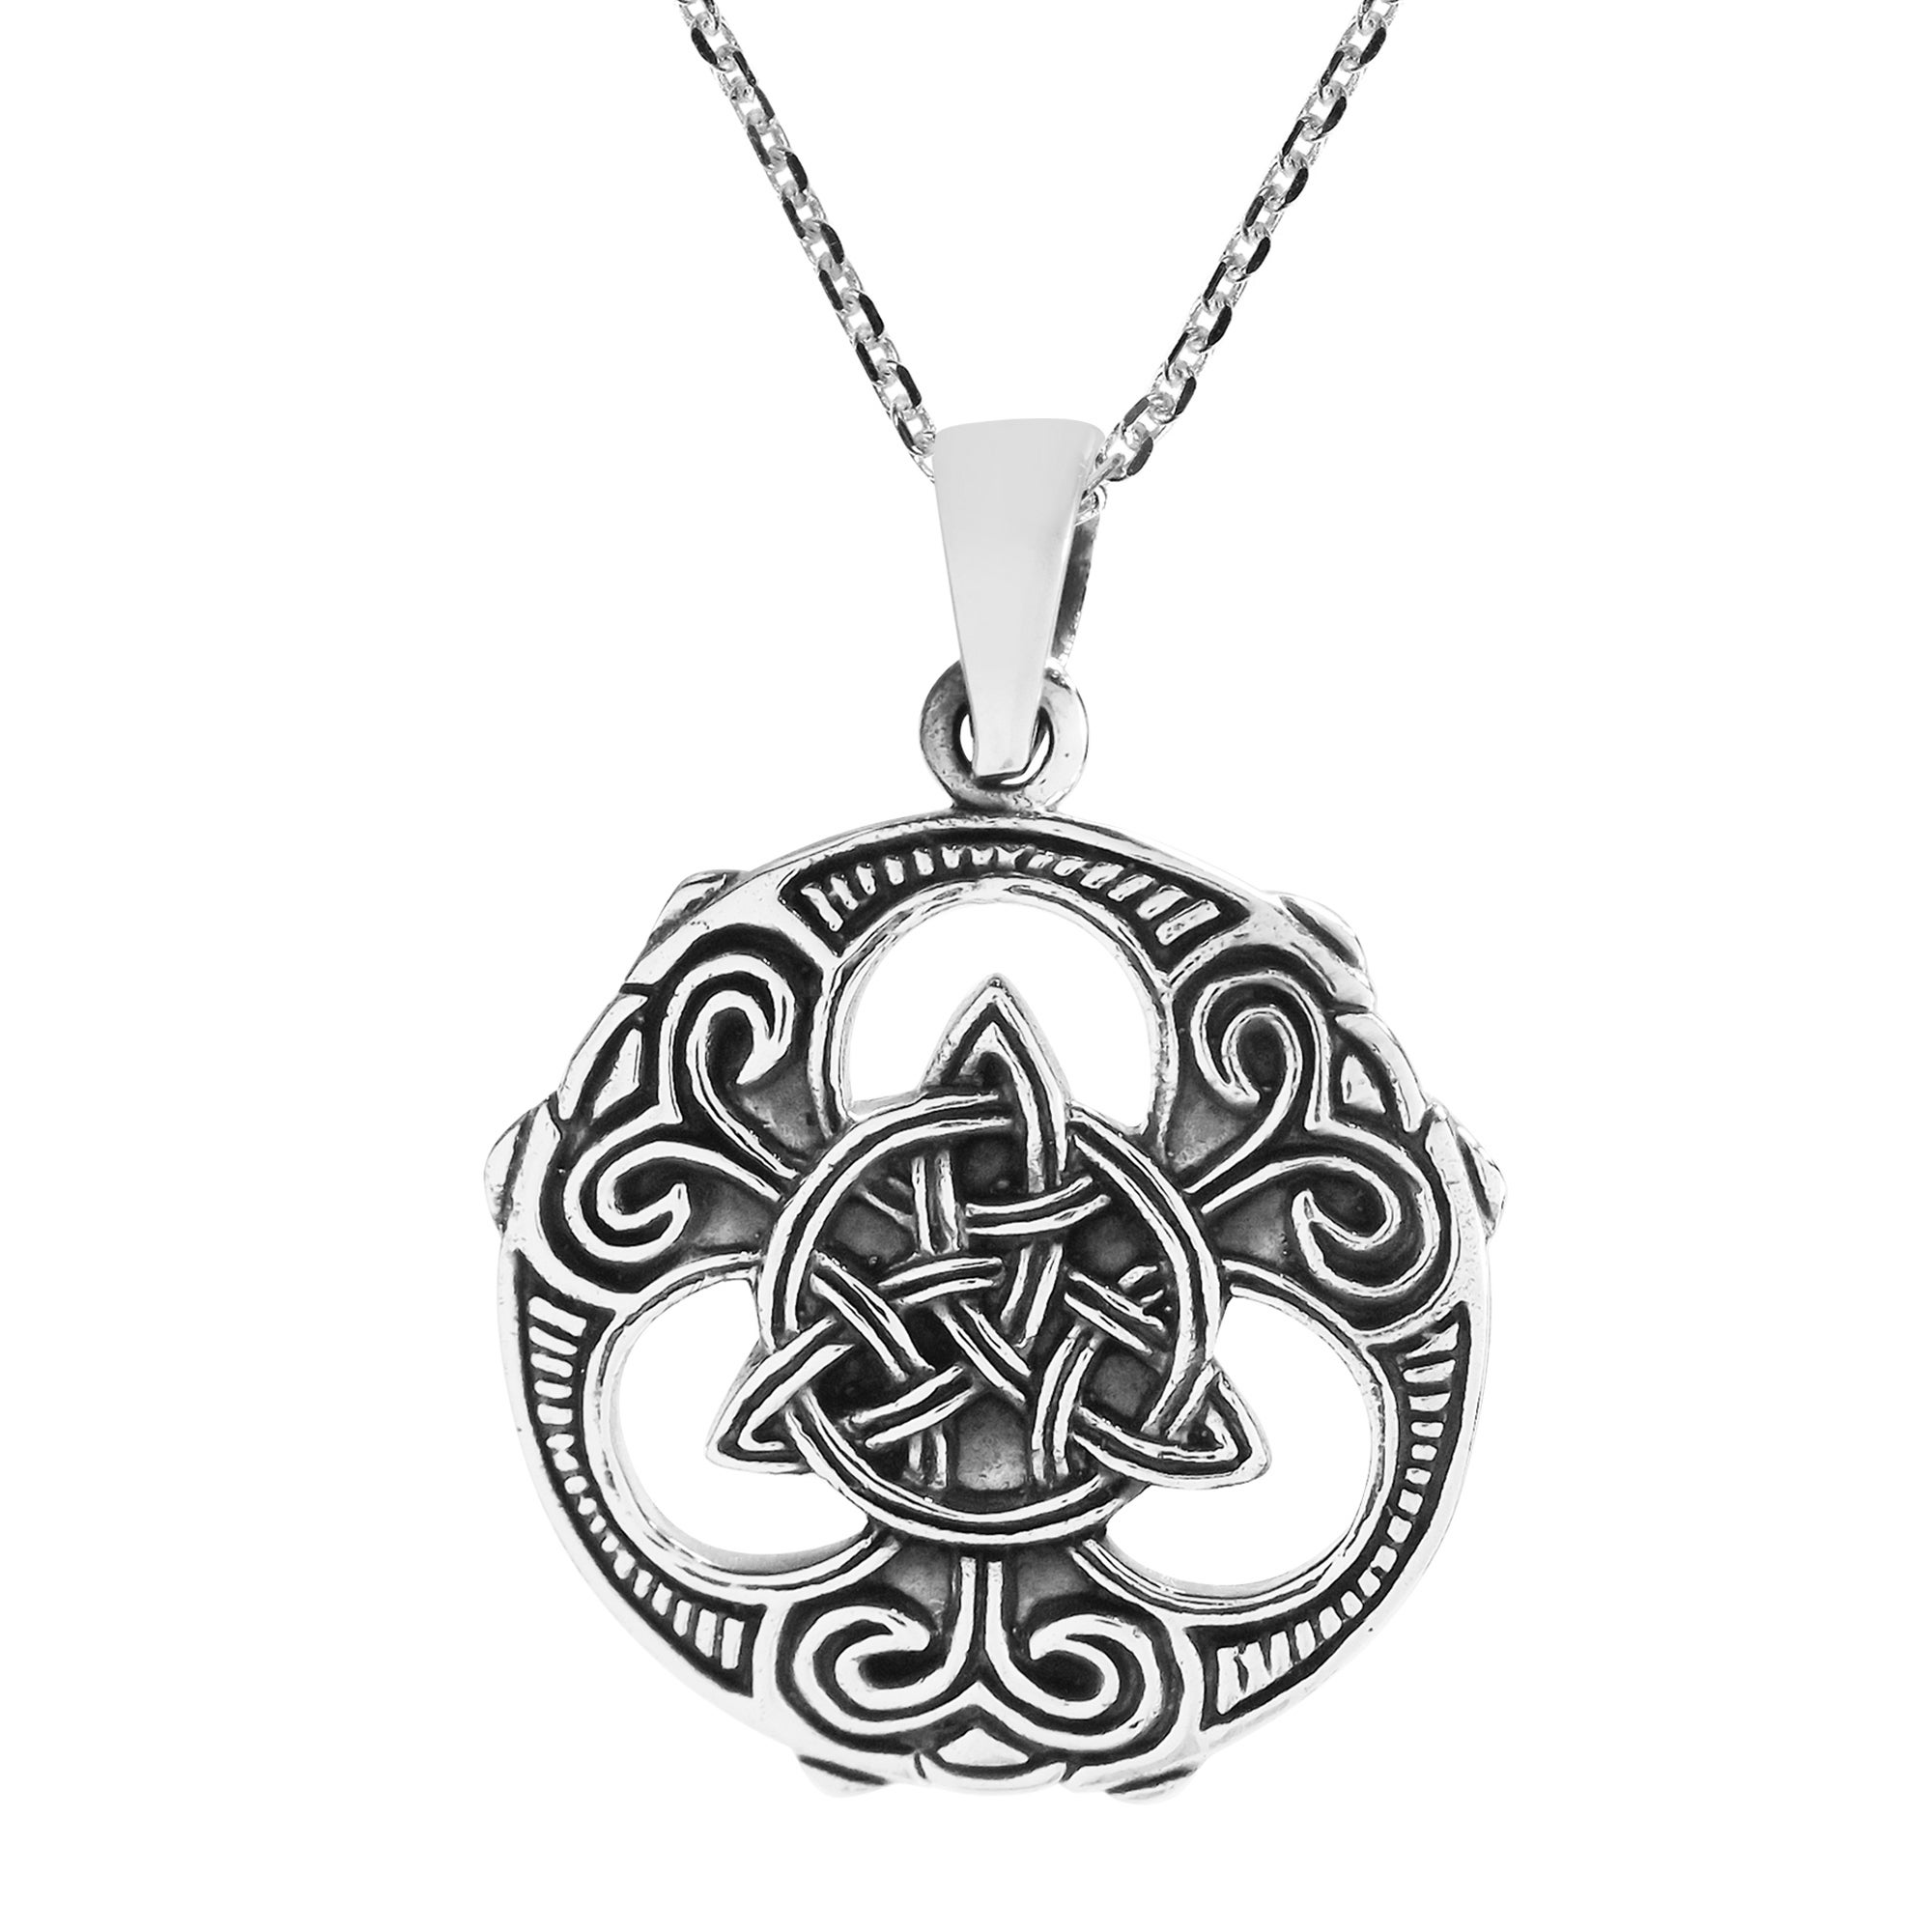 Shop Handmade Intricately Stylized Trinity Knot Or Triquetra